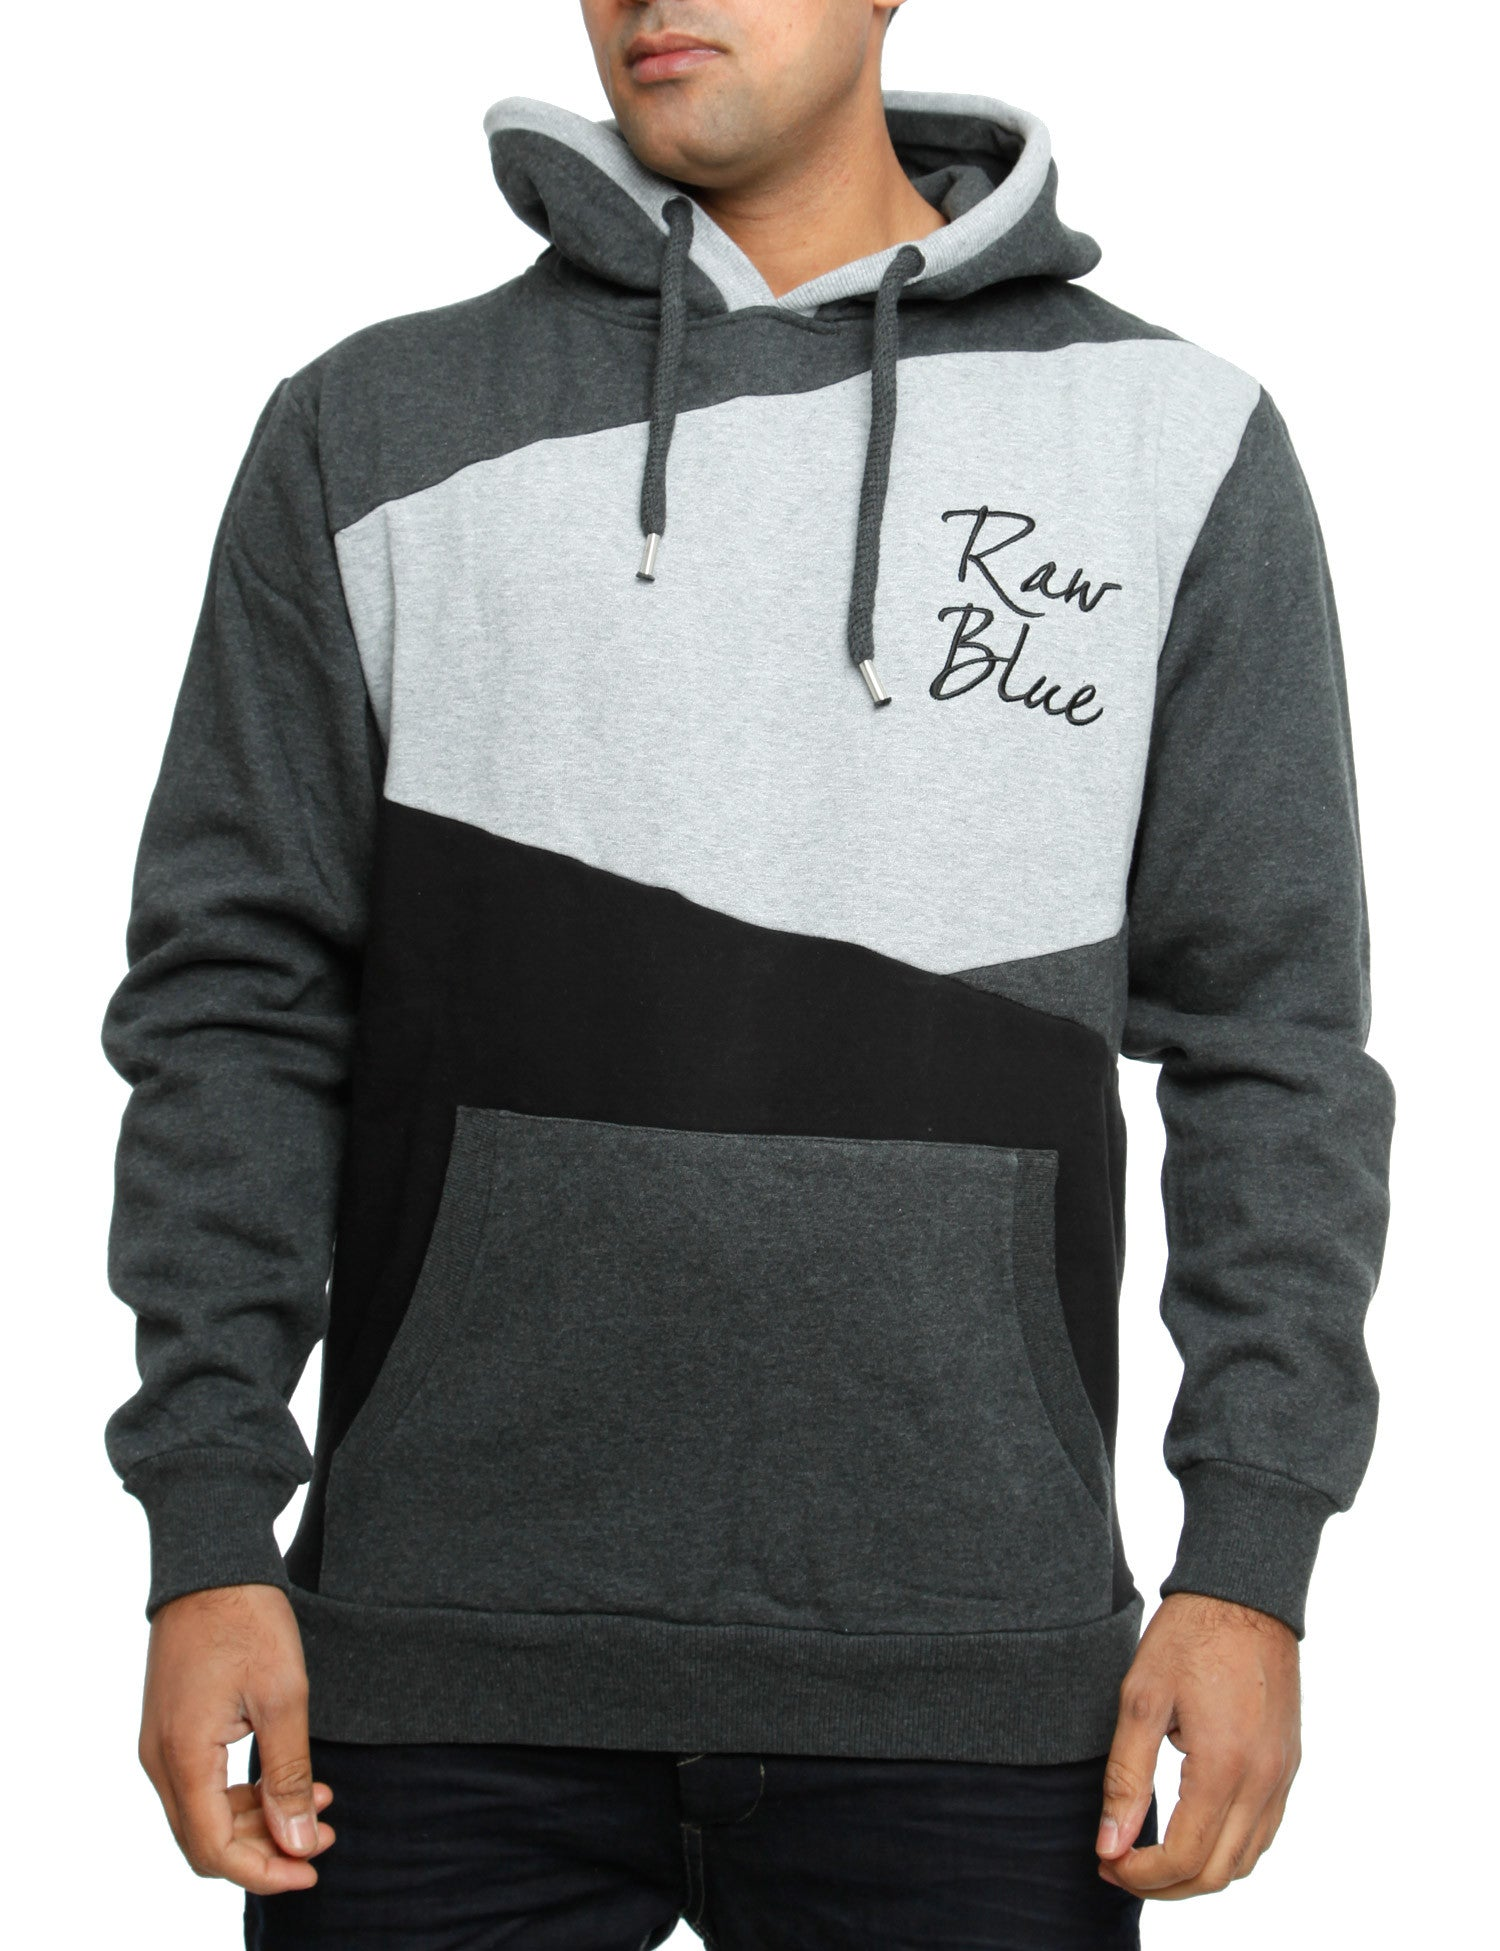 Raw Blue Hoody RBBH2007 D. Grey